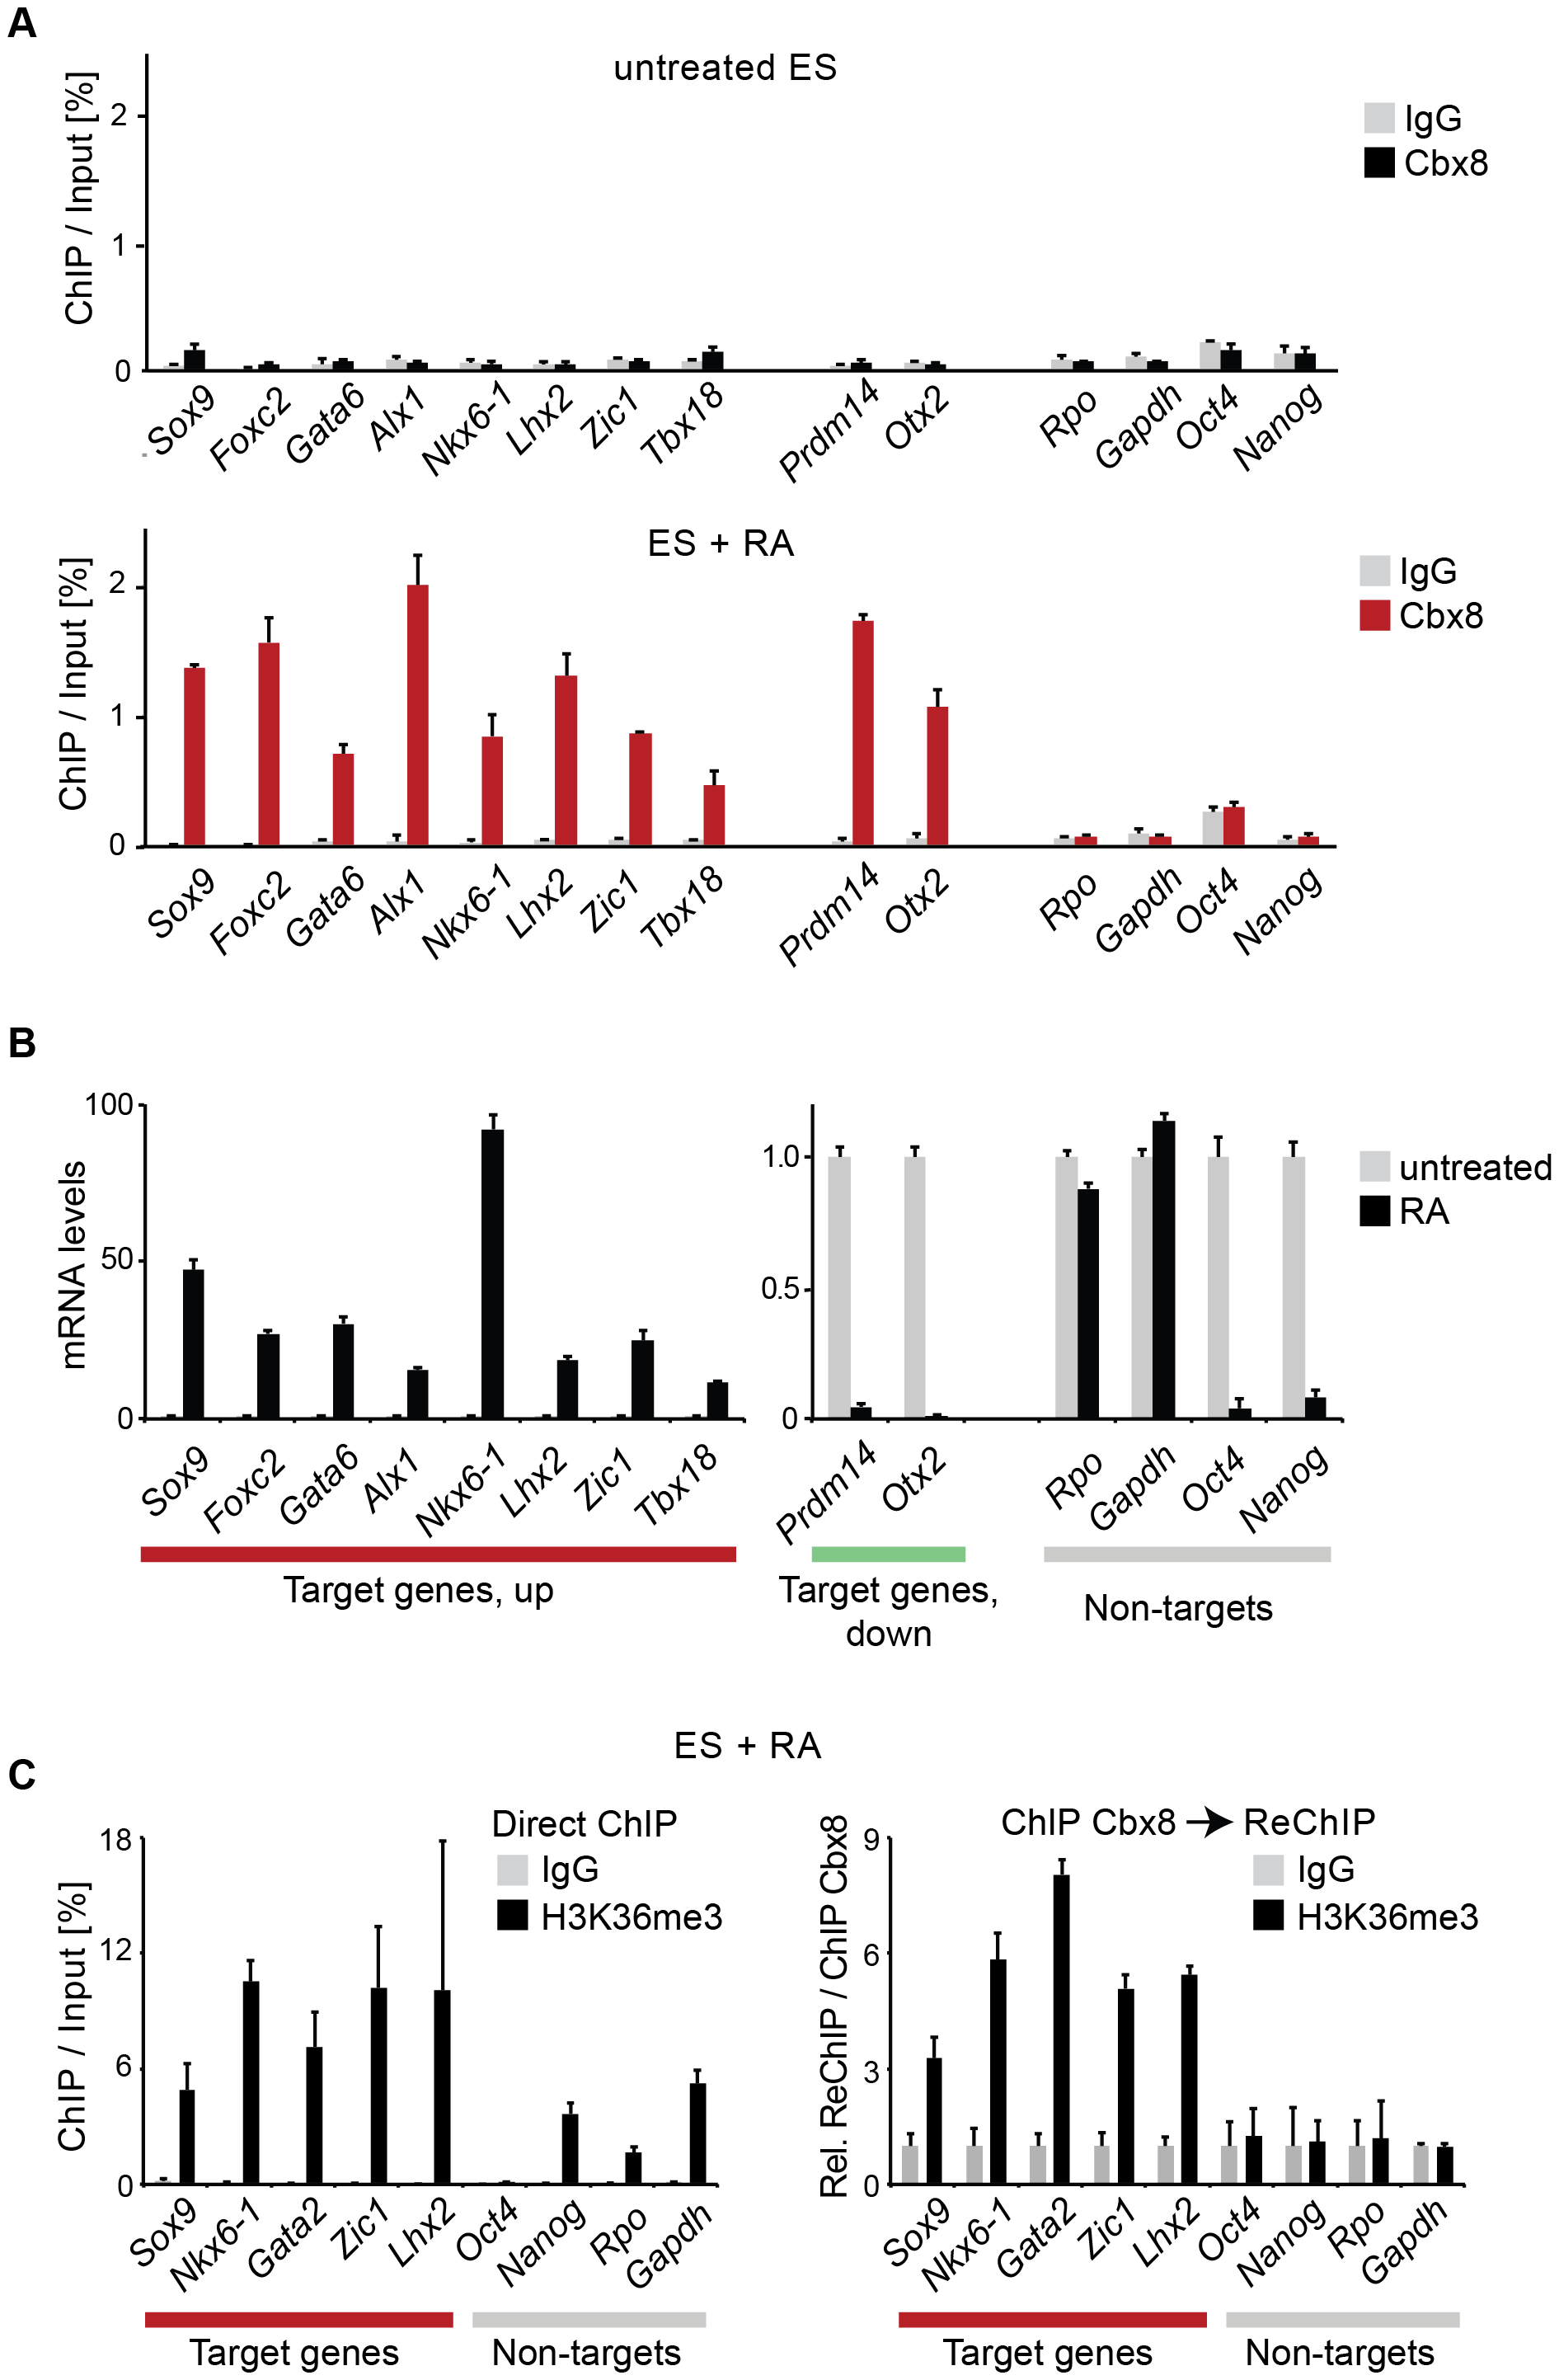 Cbx8 binding coincides with gene activation.